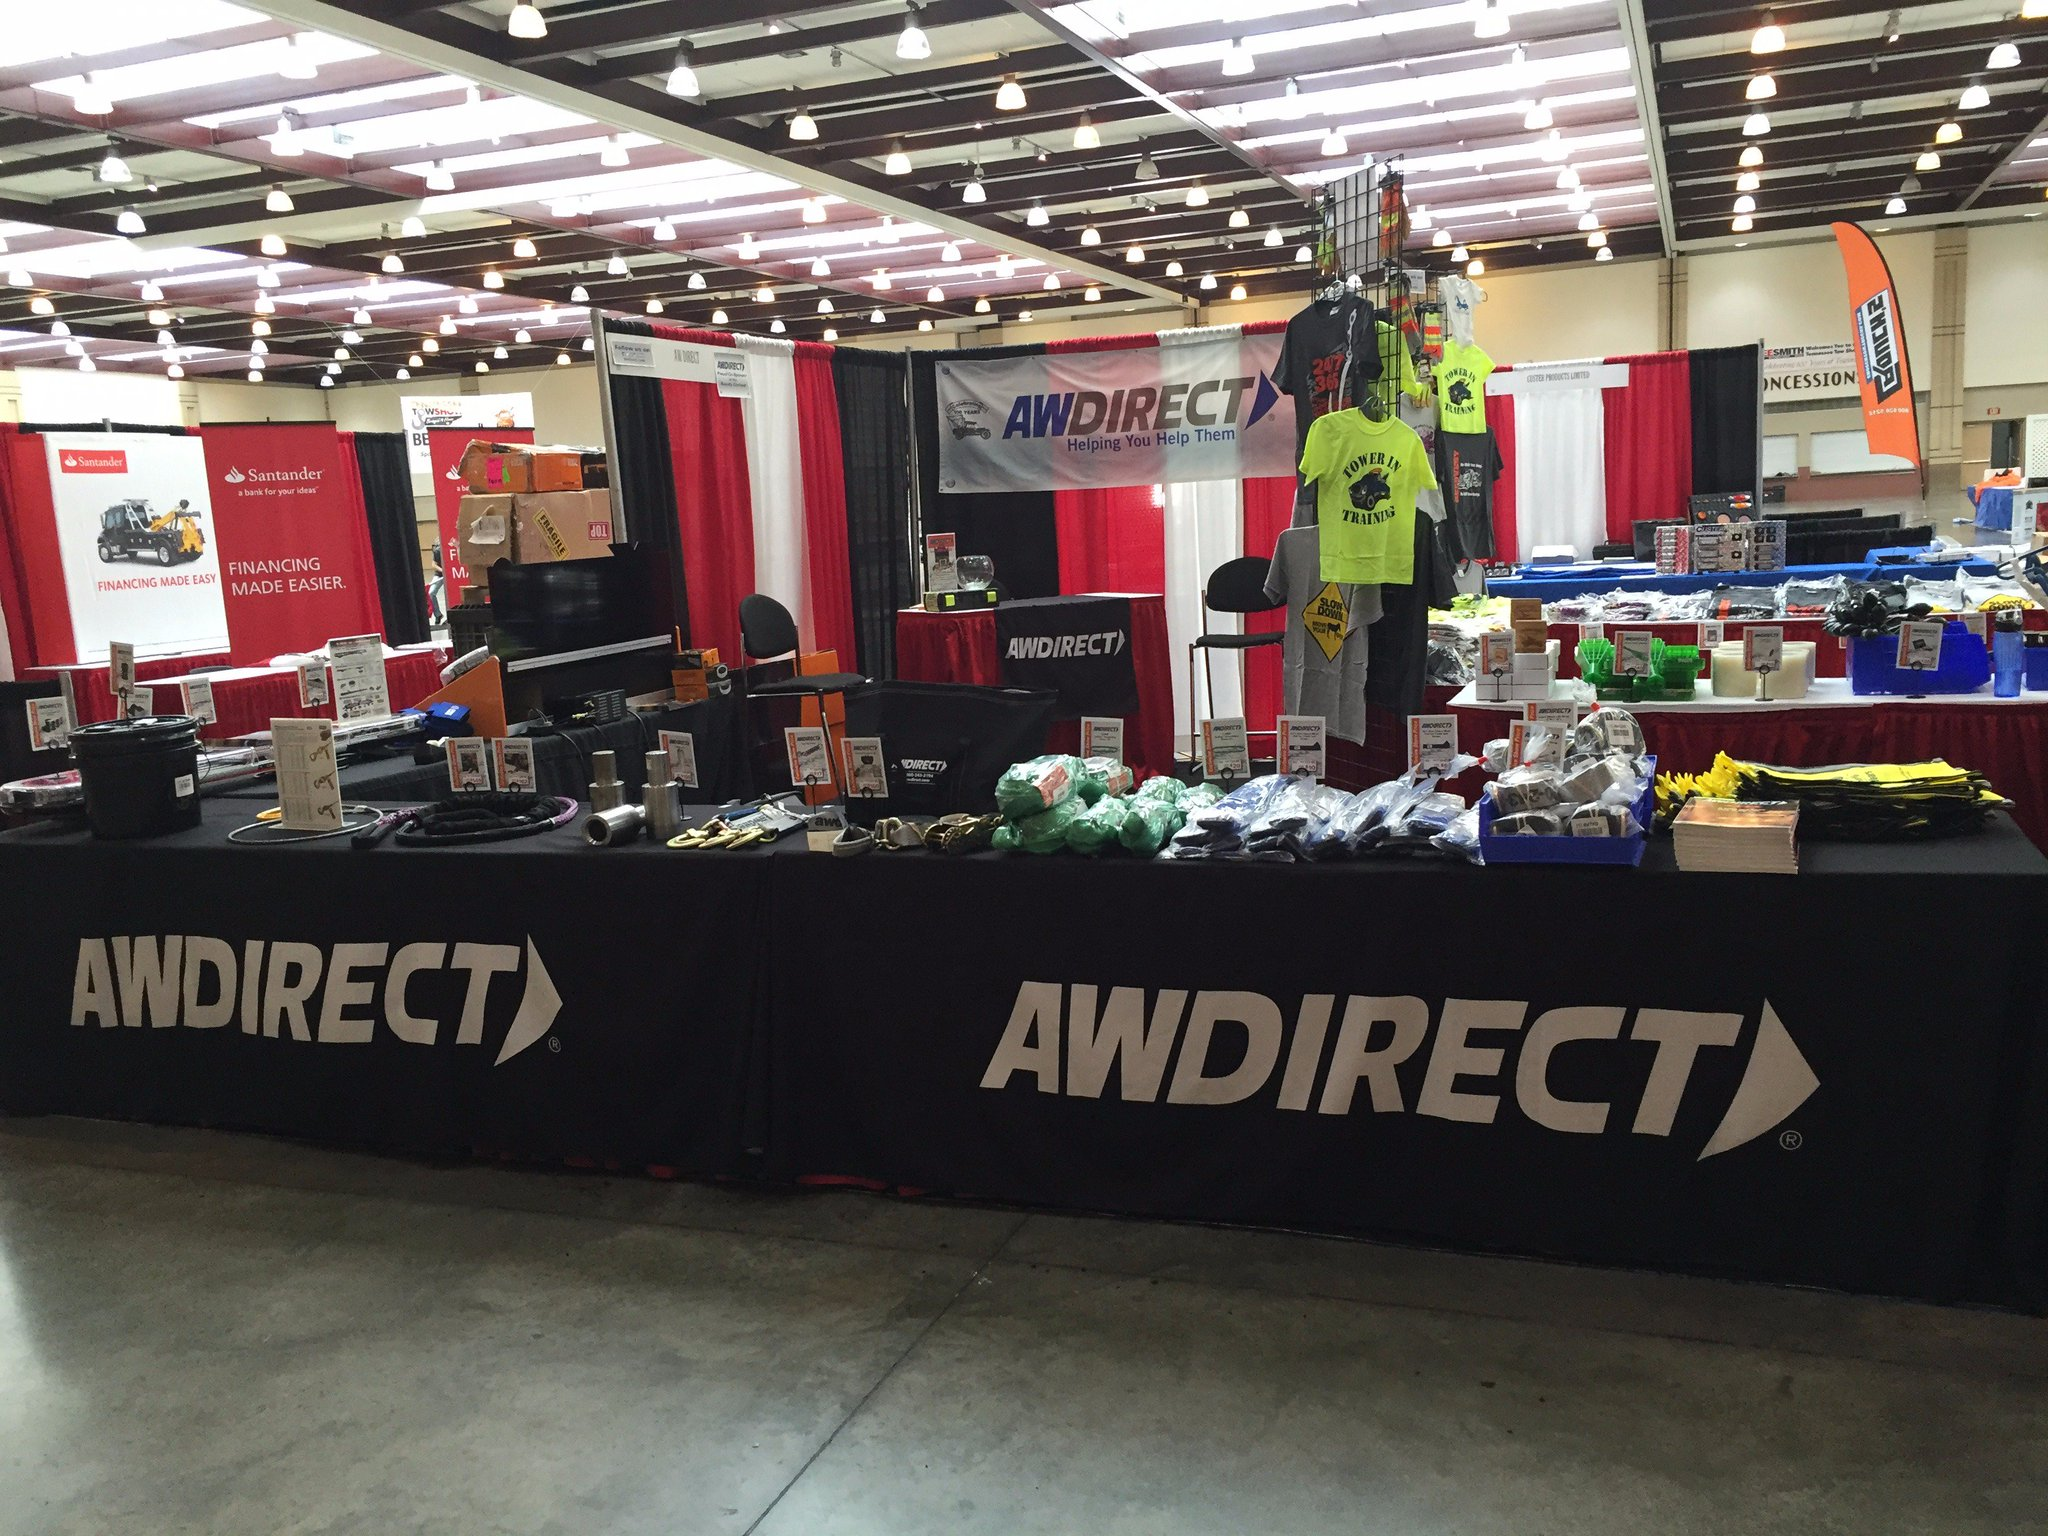 Aw Direct On Twitter Booth 701 Is Setup Ready To Go Stop By To See Us Enter Our Drawing Tennesseetowshow The latest deal is 10% off sitewide @ aw direct promo code. twitter